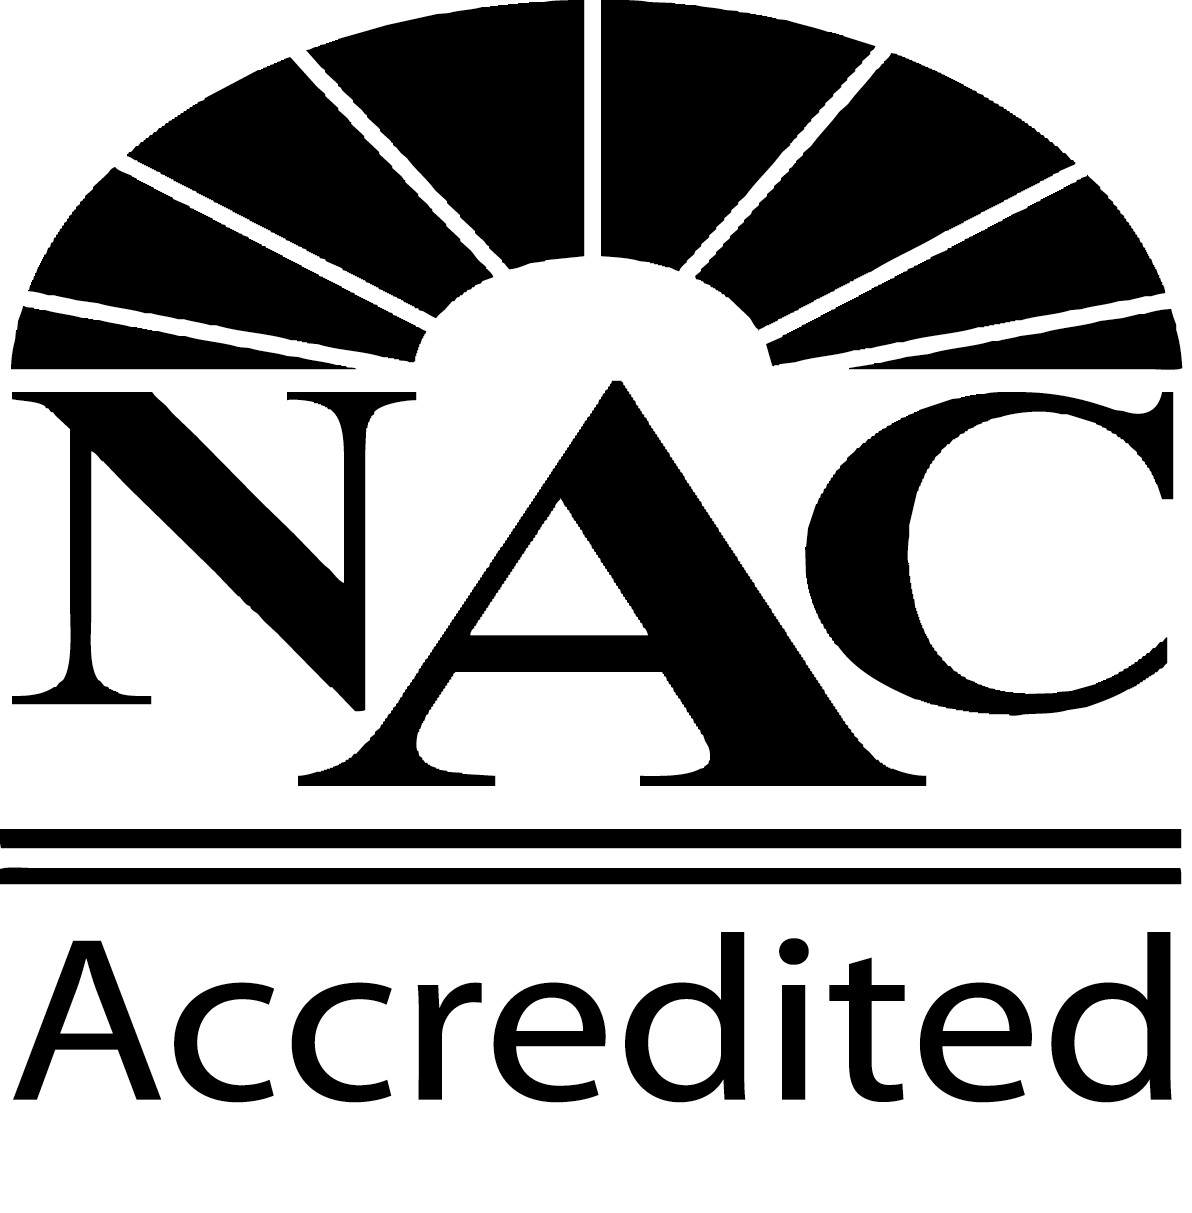 NAC-Accredited-logo.jpg